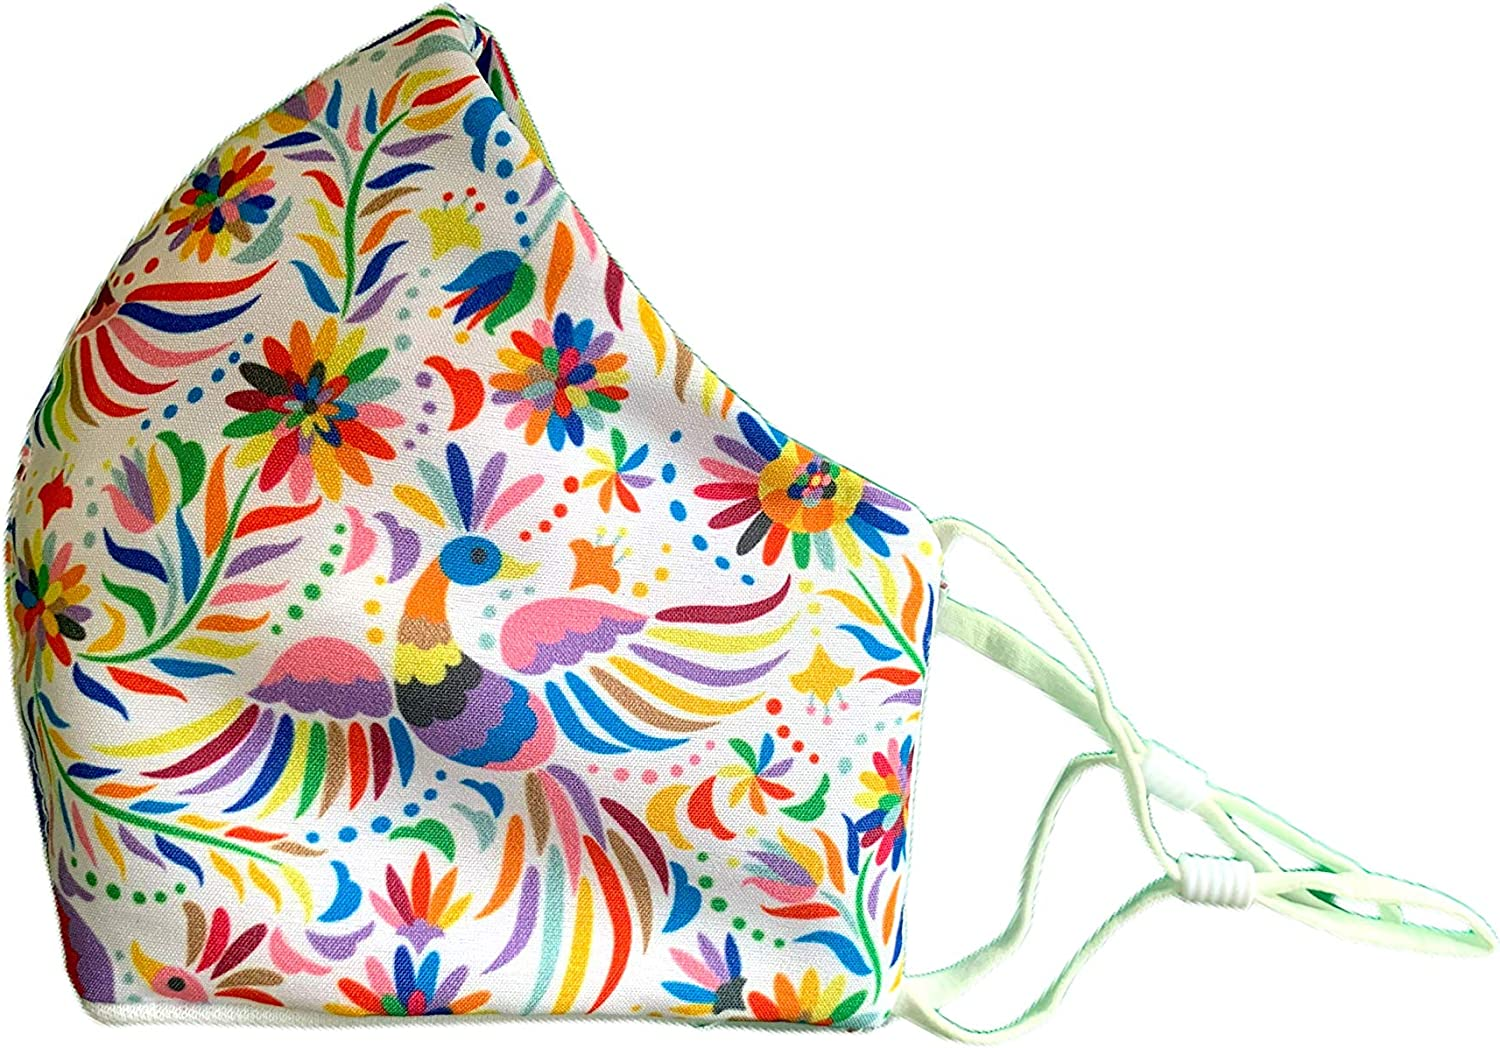 Floral Spring | Flowers | Safety Reusable & Washable Anti Dust Mouth Fashion Balaclava Cover | Breathable Bandanna with Filter Slot | Inside Layer Cotton 100% | Women | Adjustable Ear Loops White